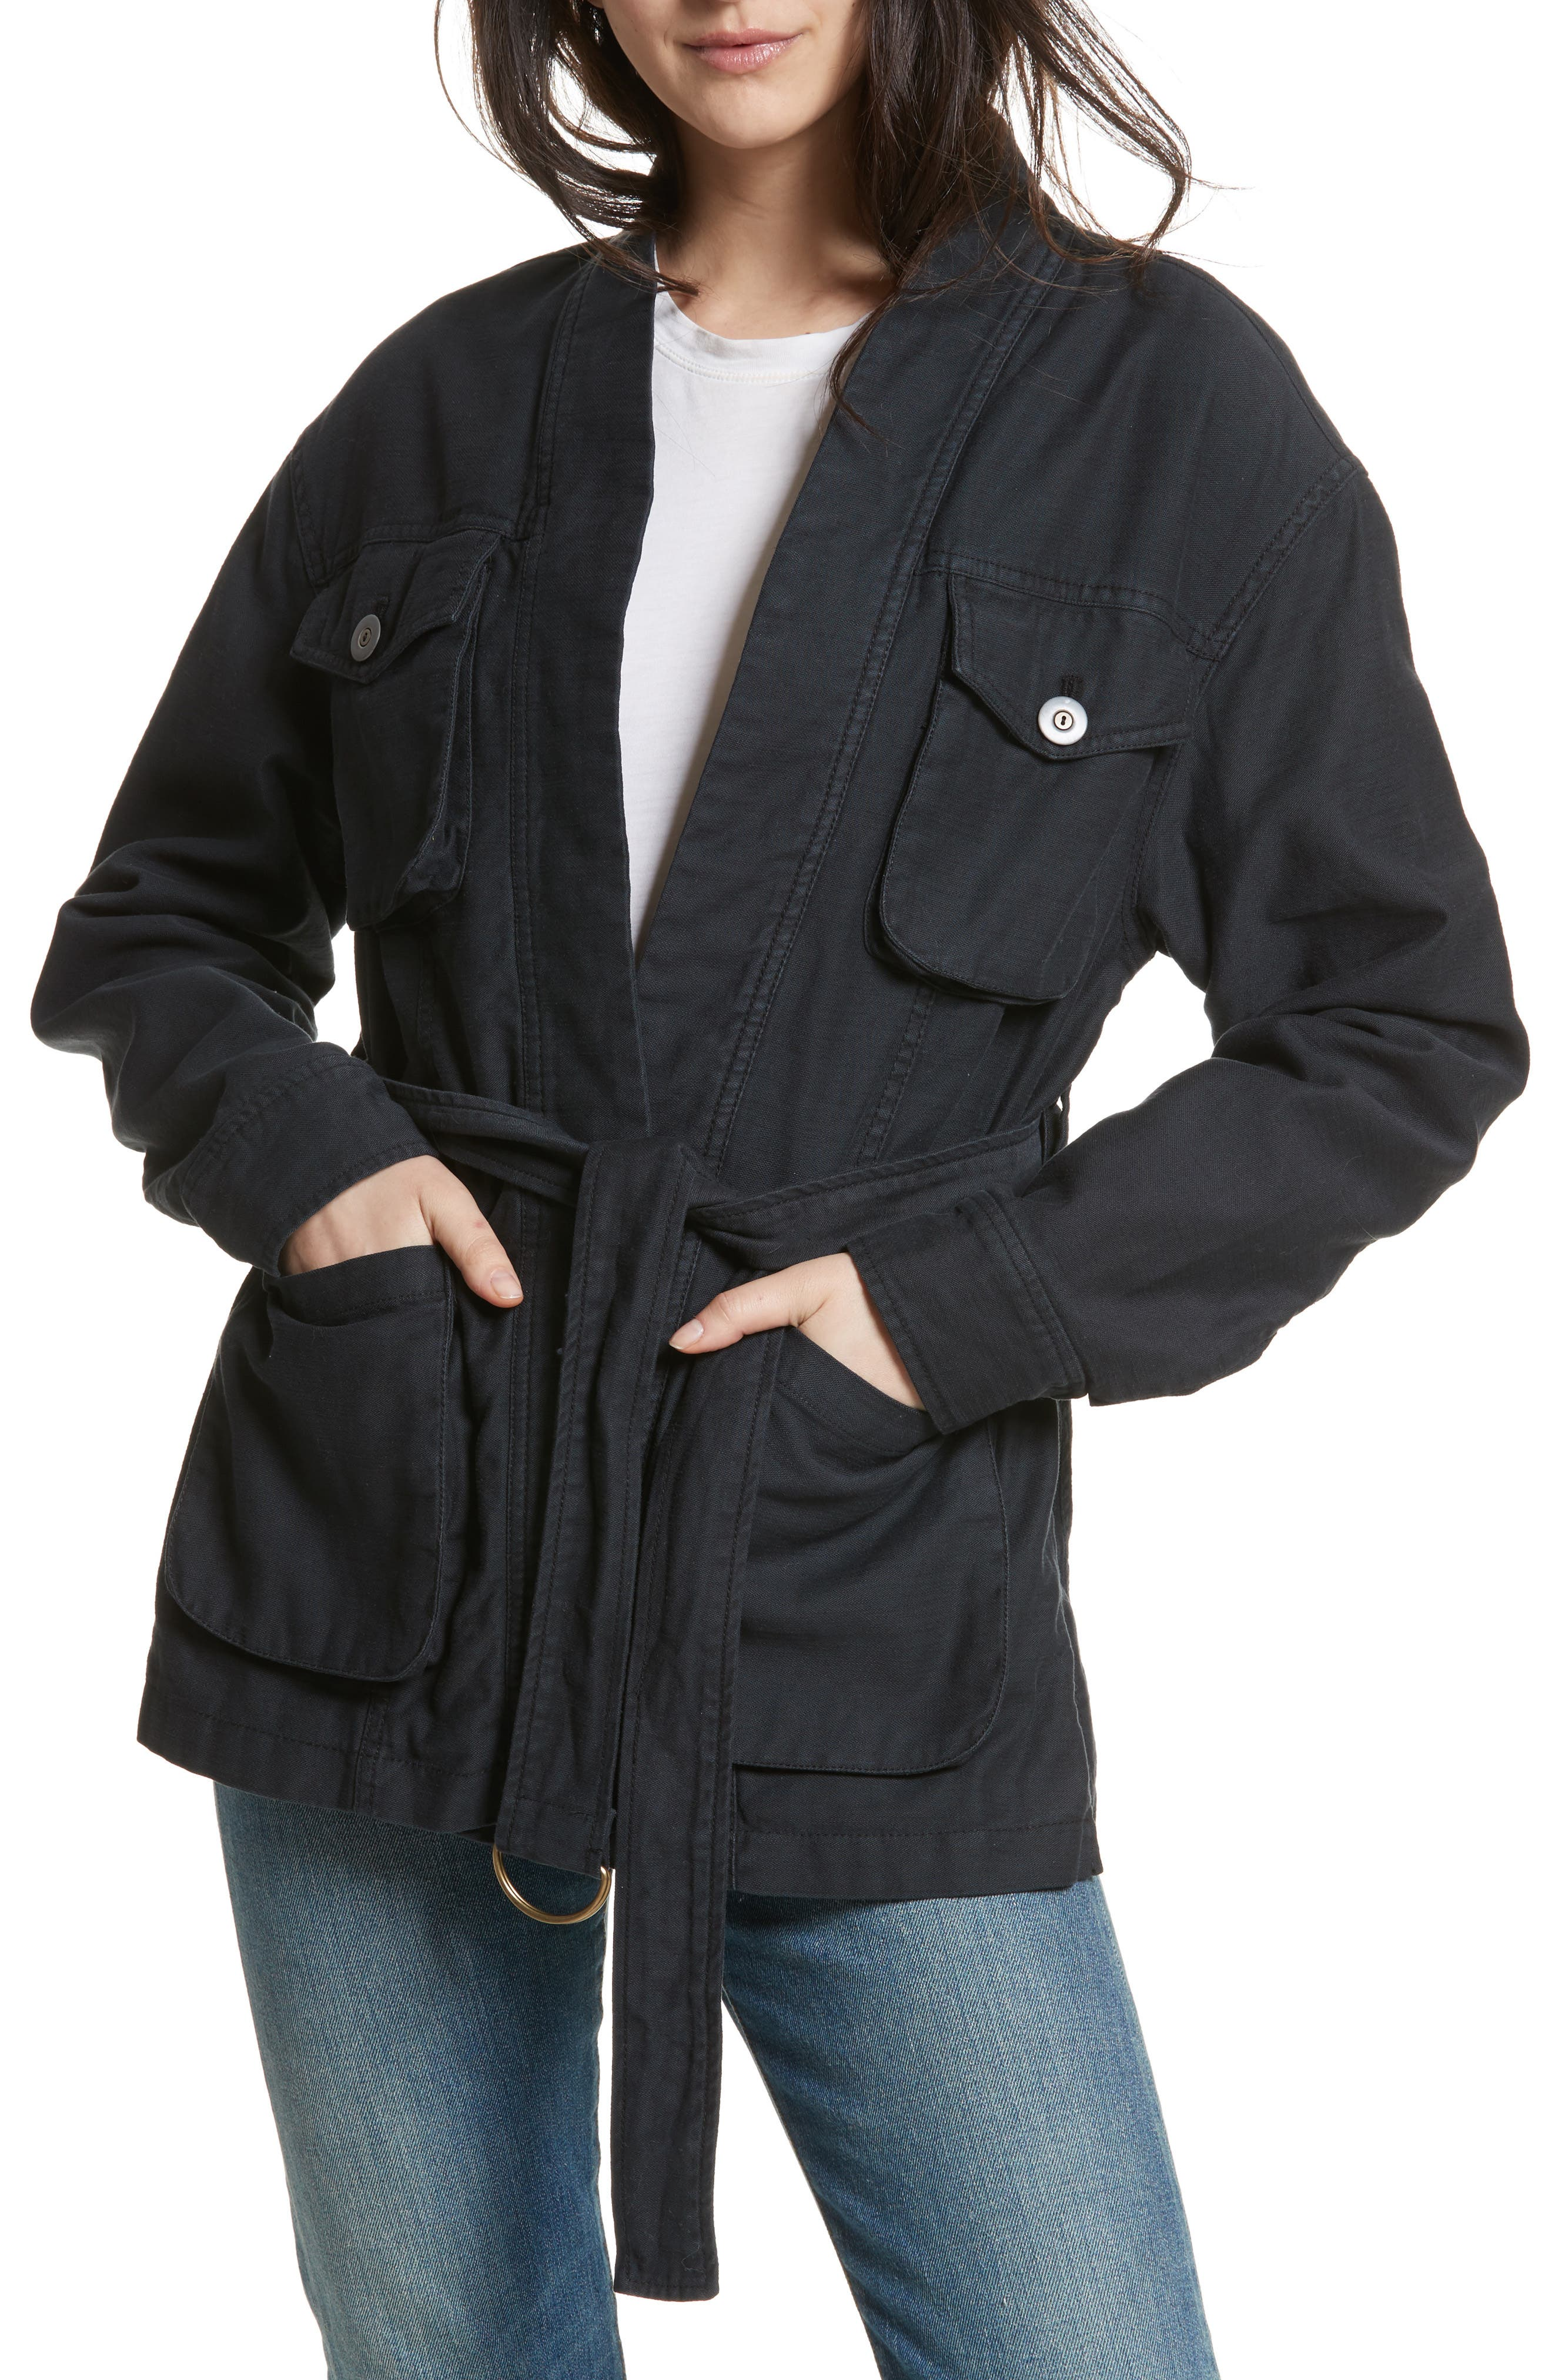 In our Nature Cargo Jacket,                             Main thumbnail 1, color,                             001